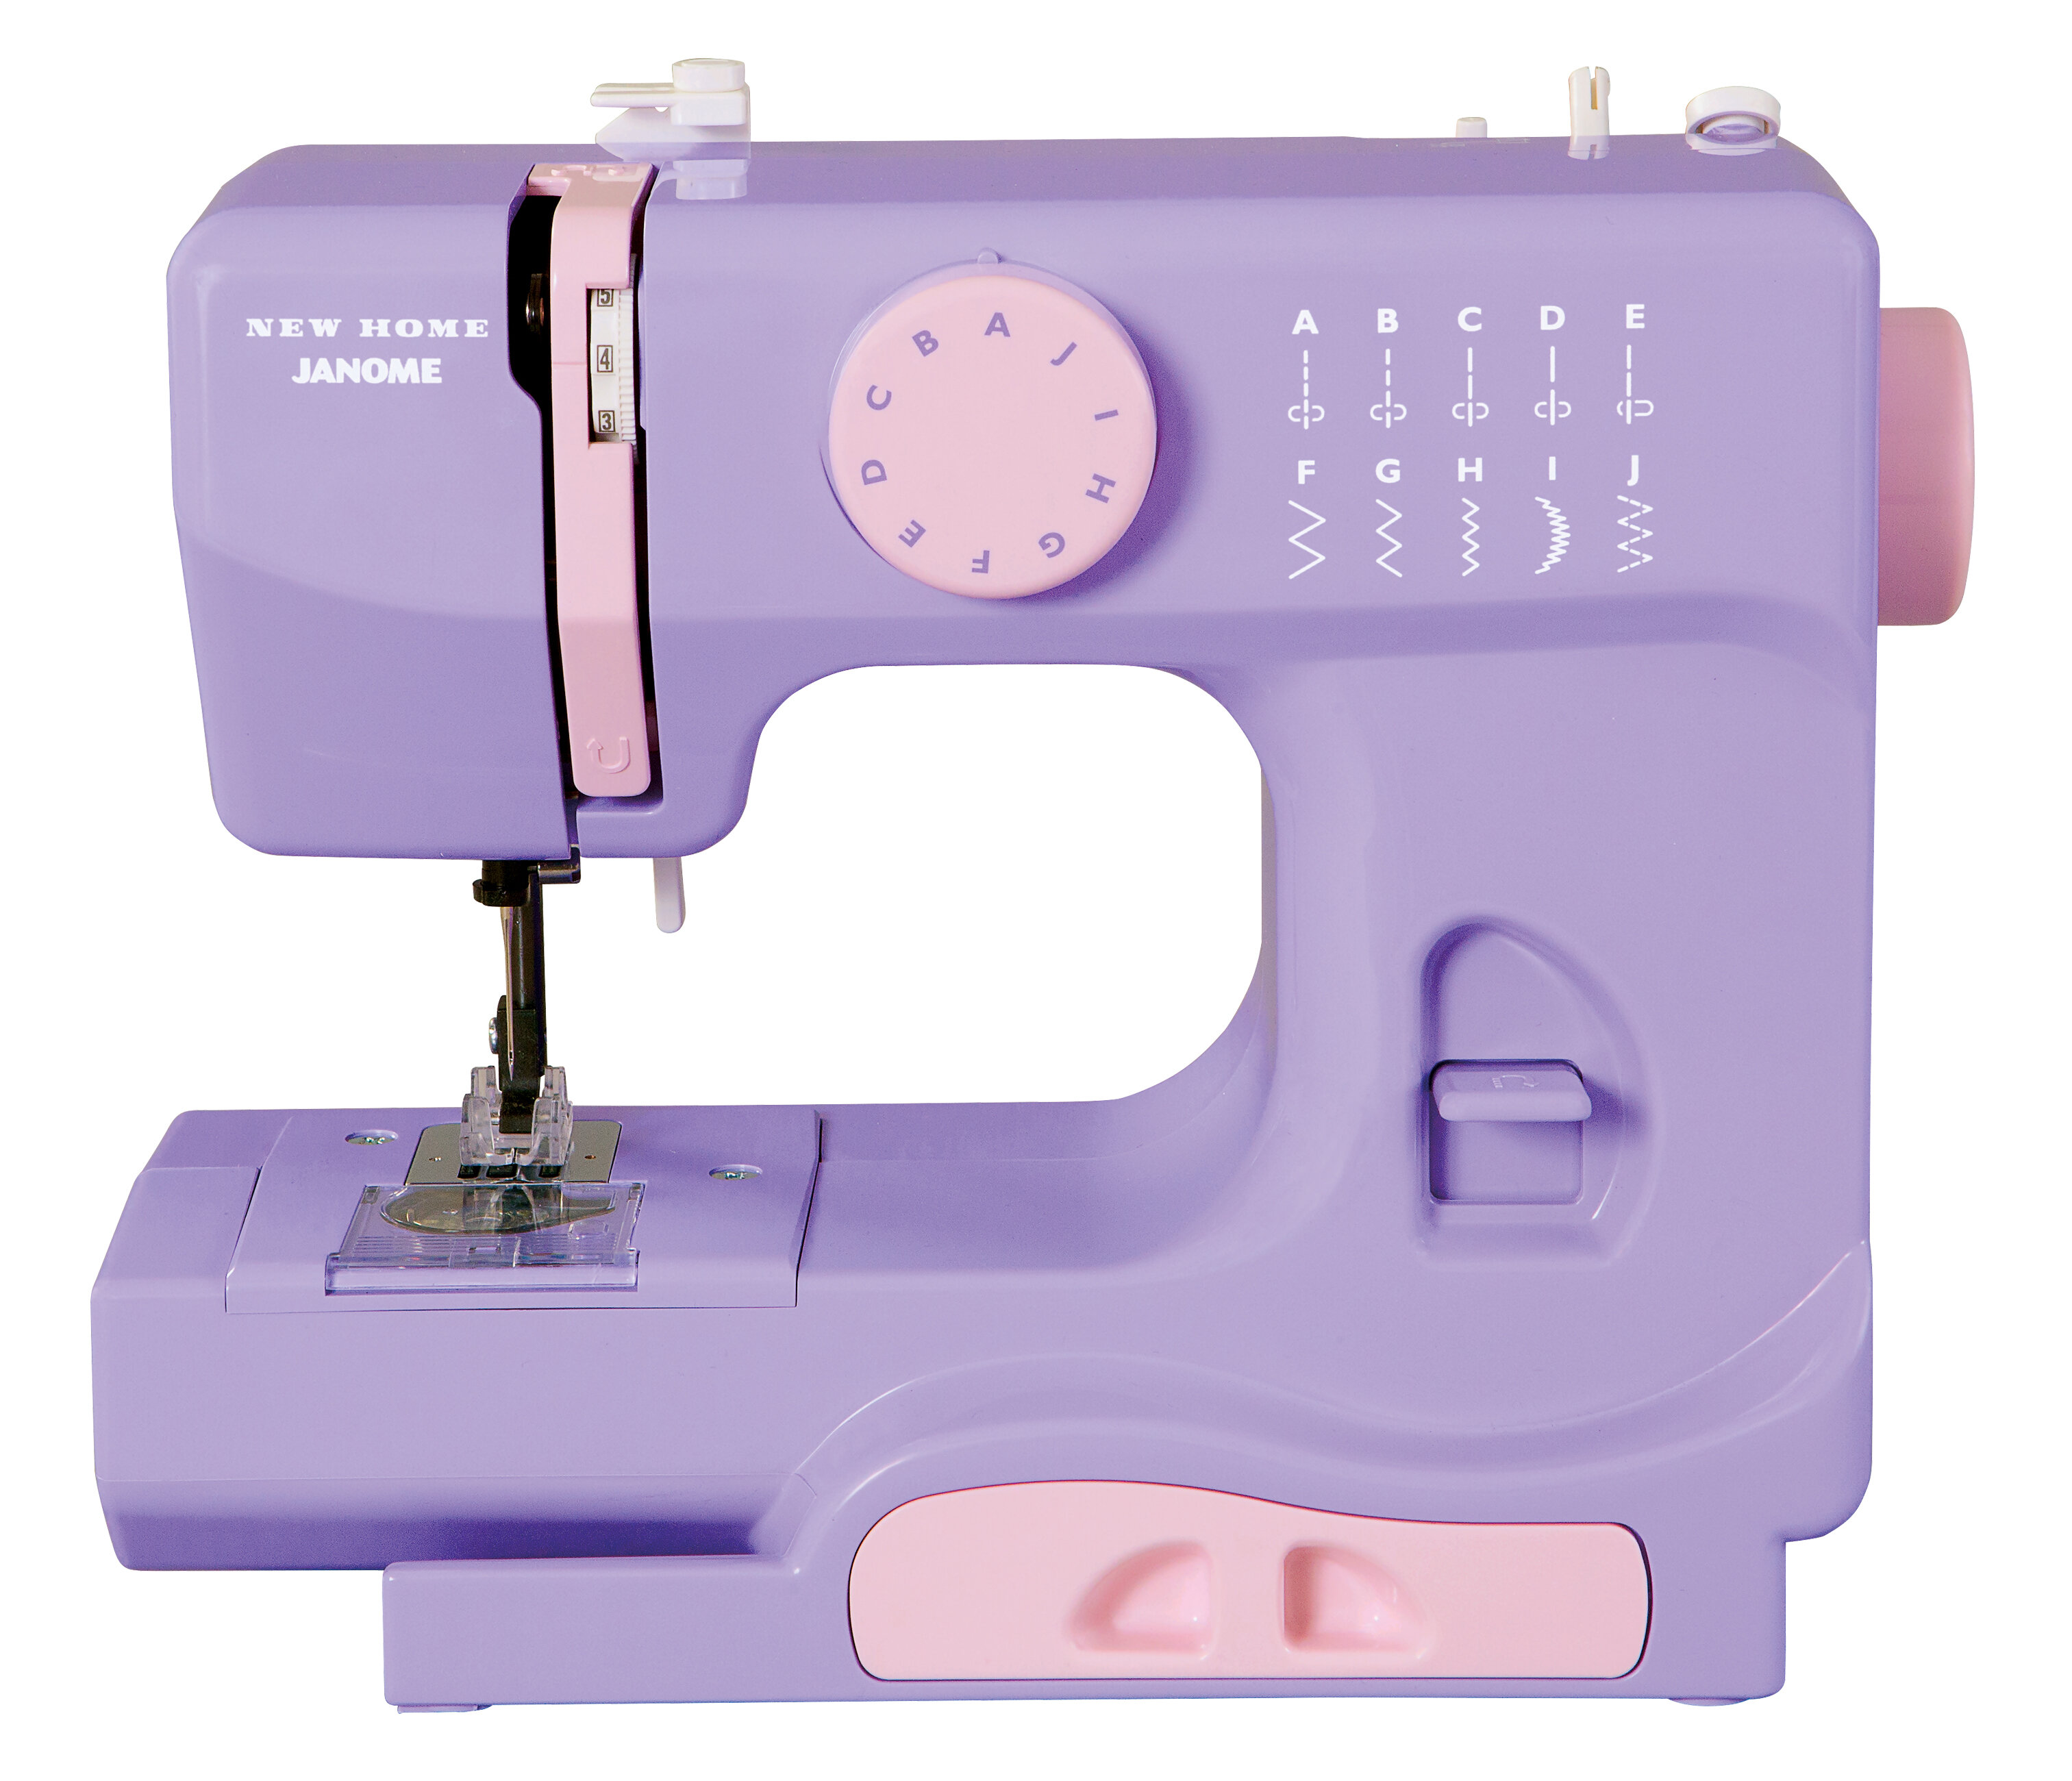 Janome Portable Easy-to-Use 5-Pound Mechanical Sewing Machine on